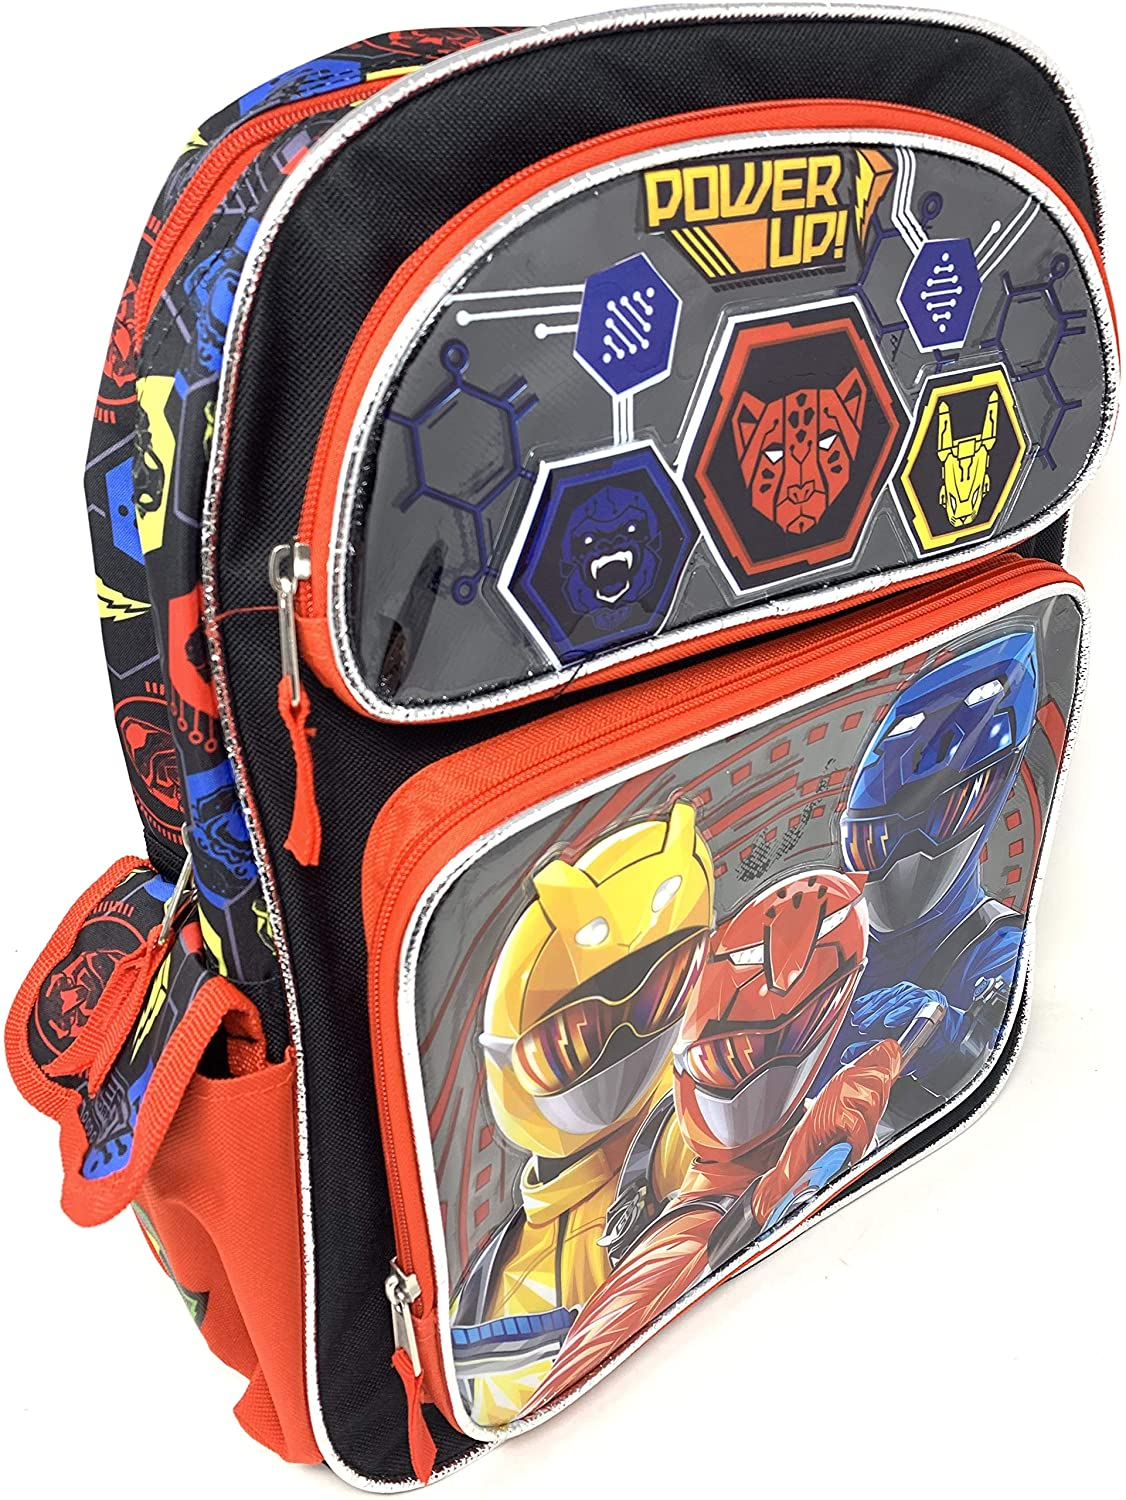 Saban's Power Rangers 16 inch Backpack with Side Pockets